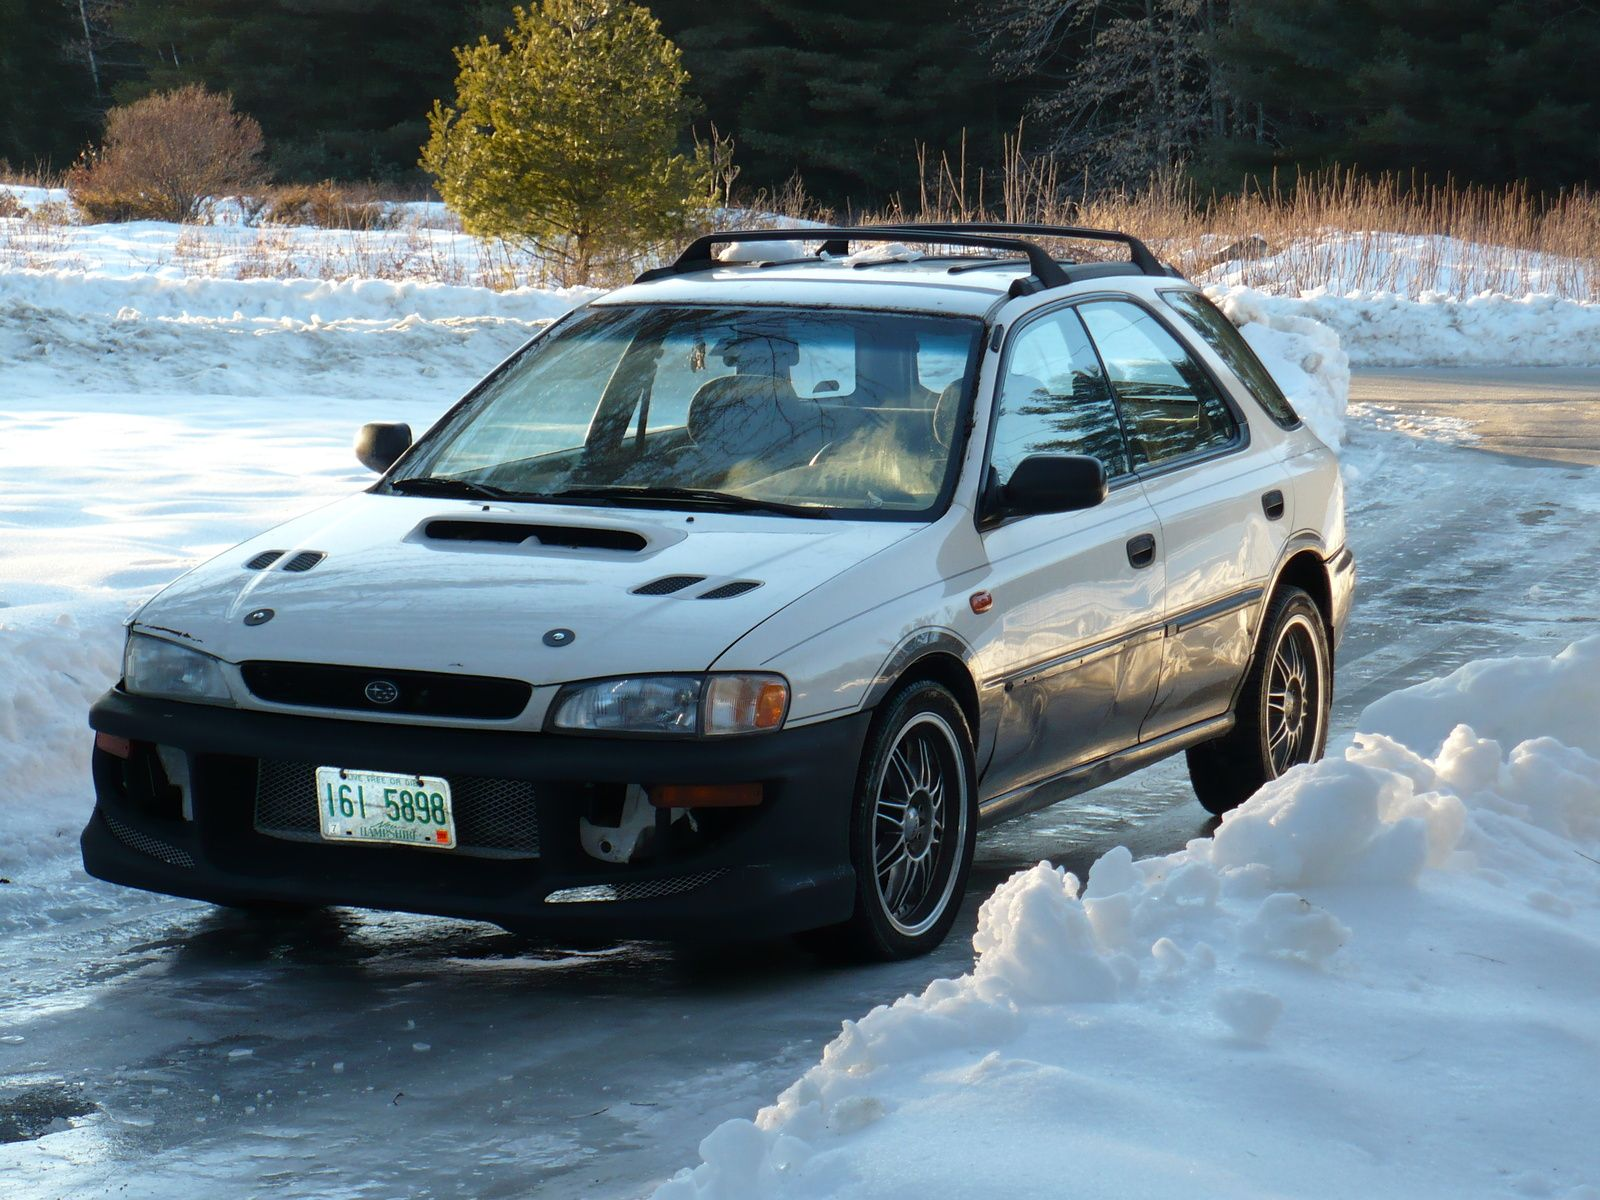 2011 Subaru Impreza WRX STi By Steven Cole Smith